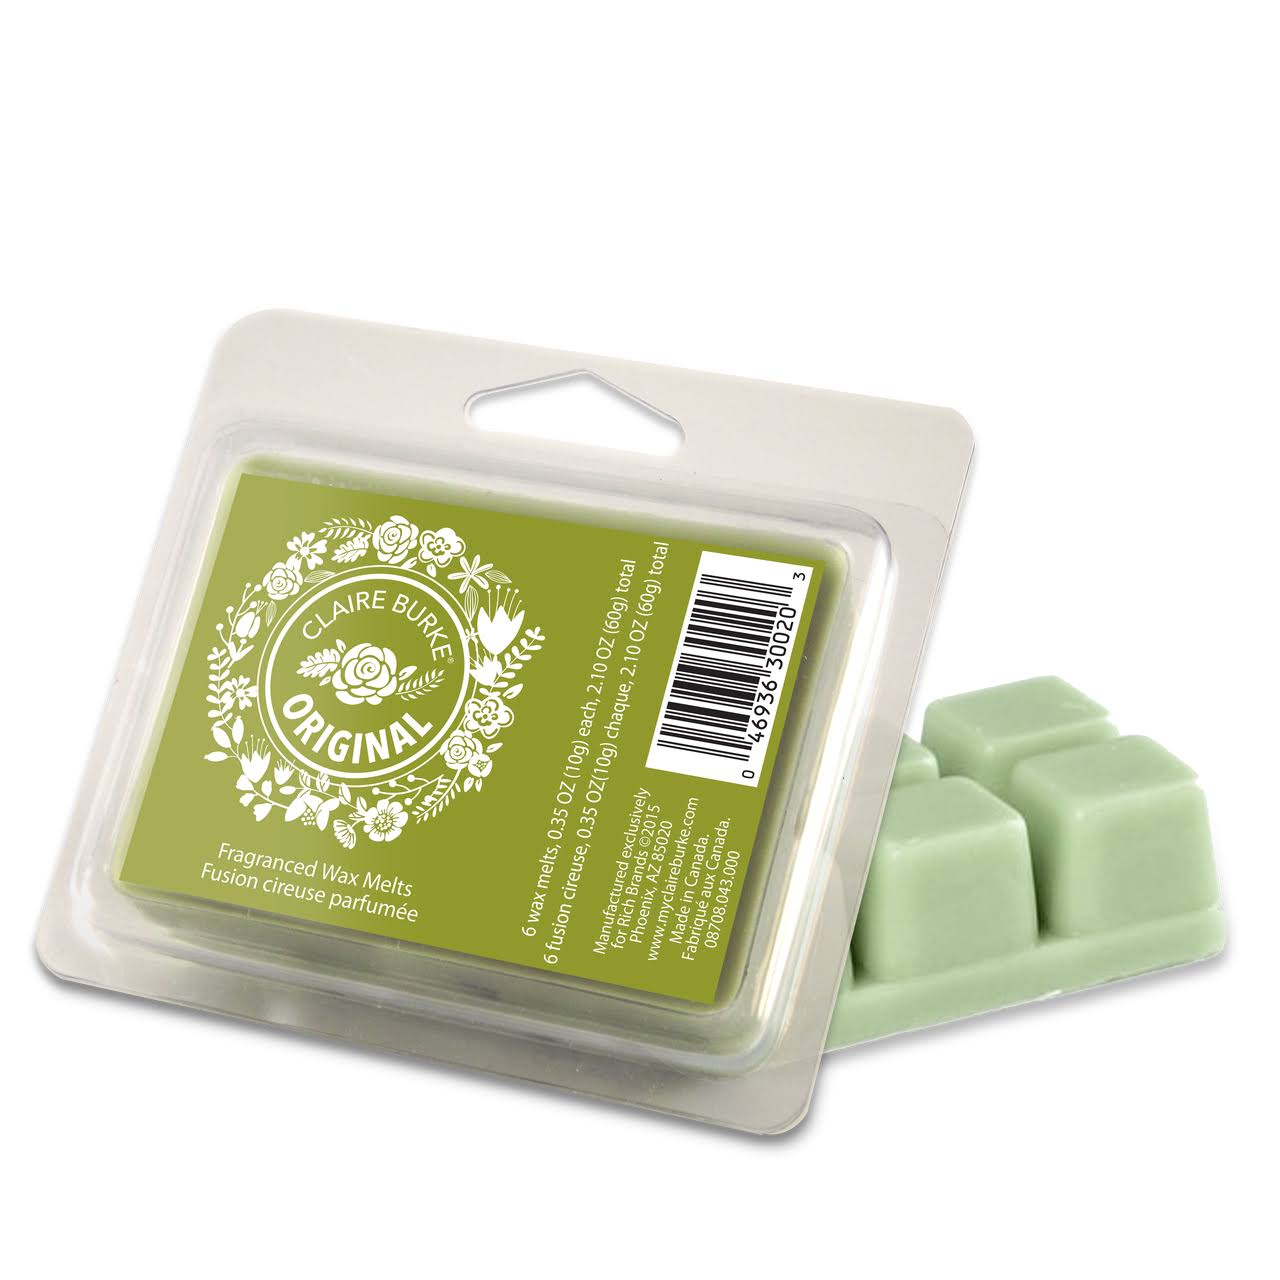 Claire Burke Wax Melts - Original, 2.1oz